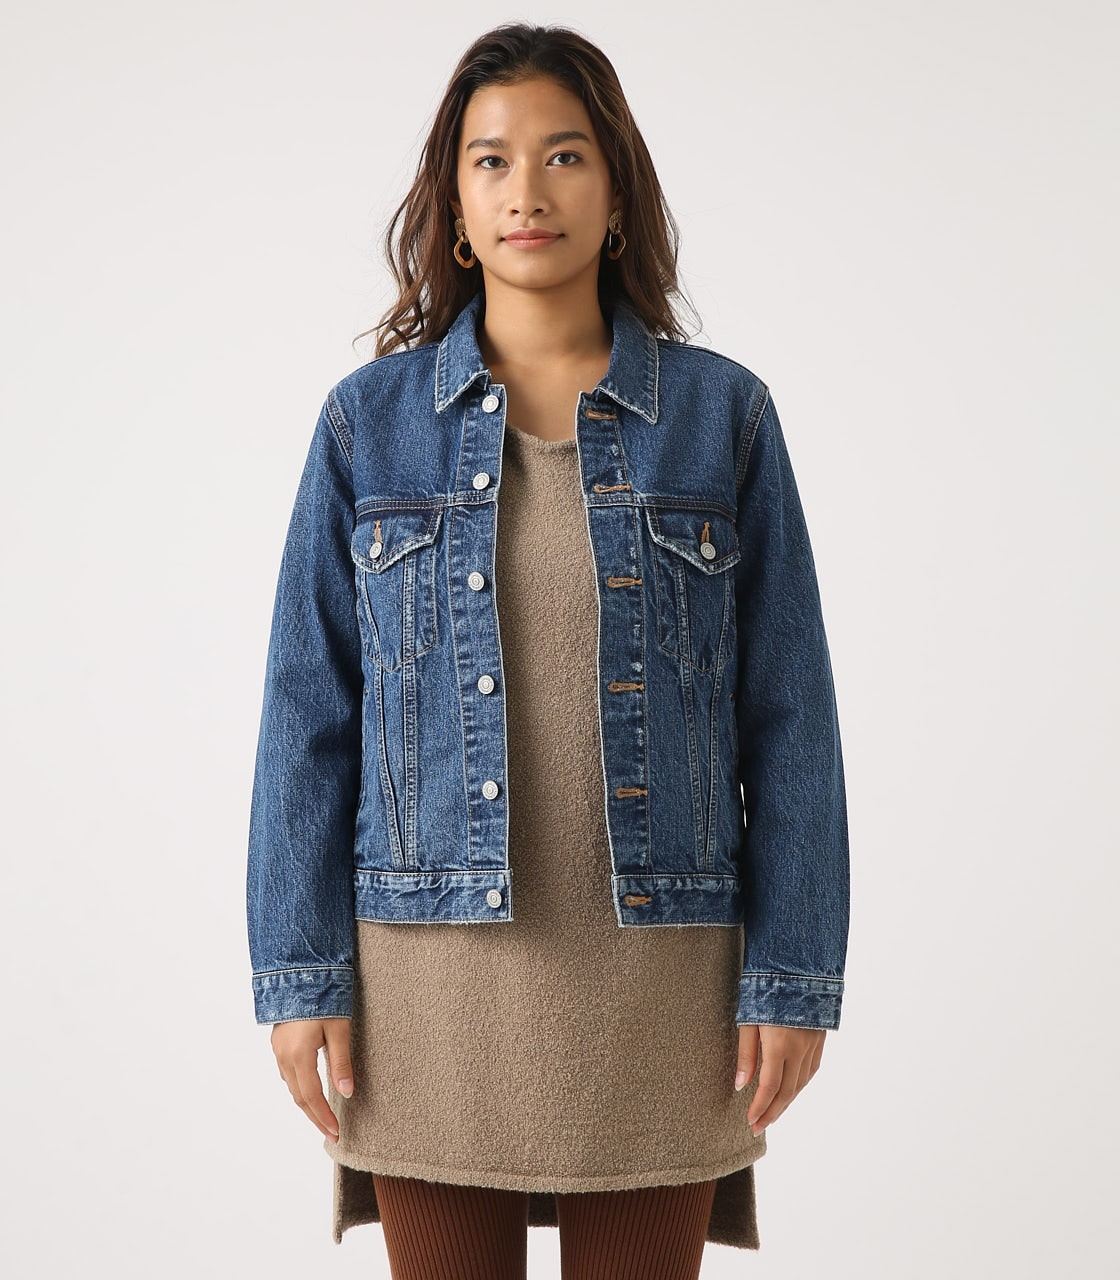 【AZUL BY MOUSSY】DENIM JACKET 詳細画像 BLU 5